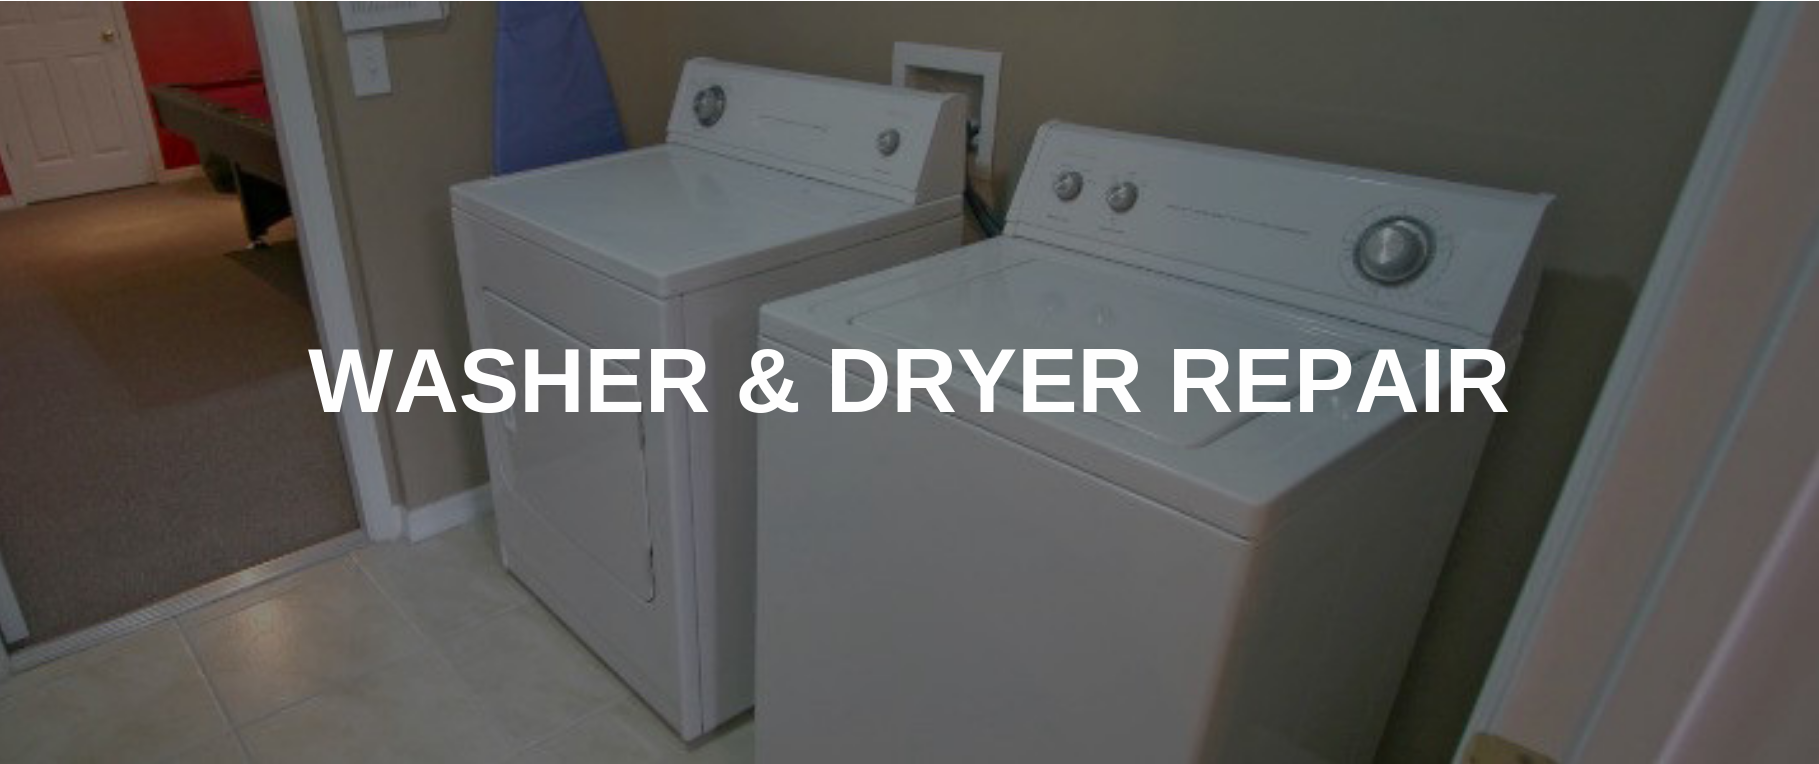 washing machine repair seattle